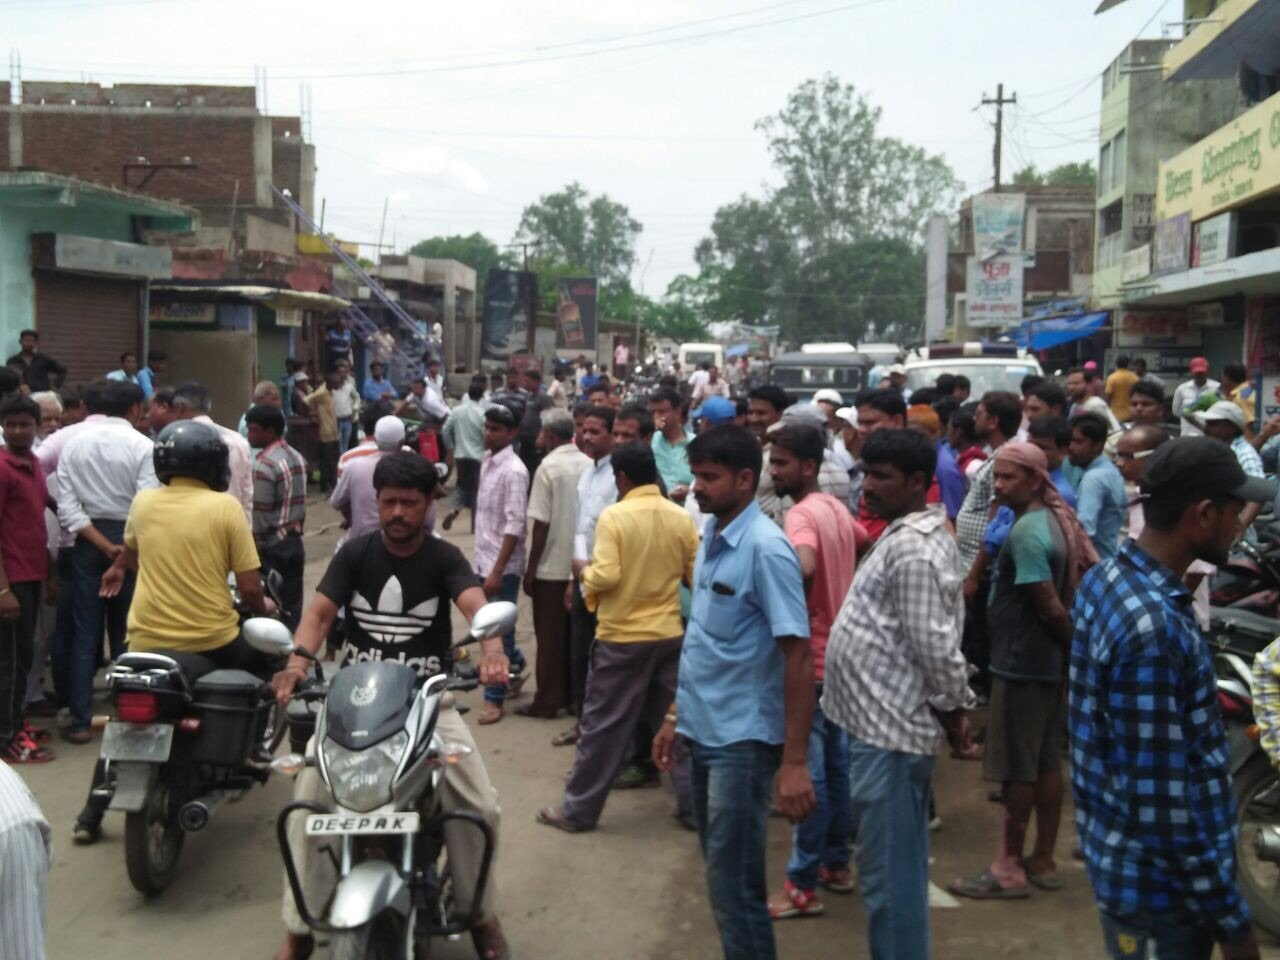 Mob At The Site Of Bokaro Mob Violence